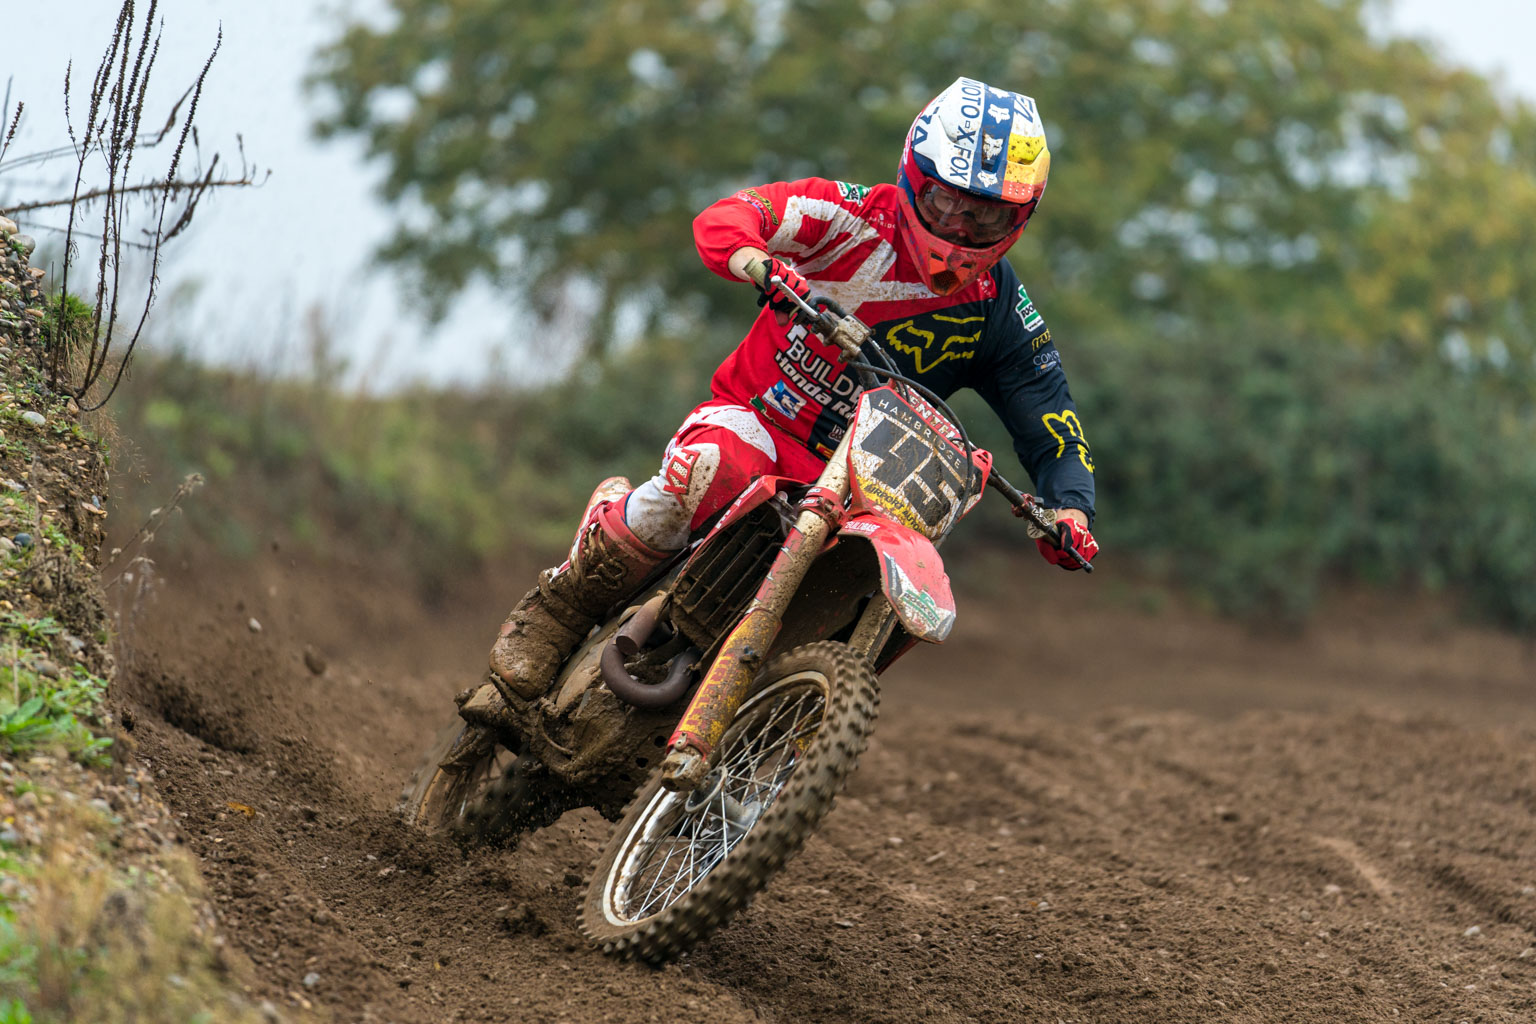 Nicholls says the CRF450 feels very narrow after years on KTM and Husqvarnas